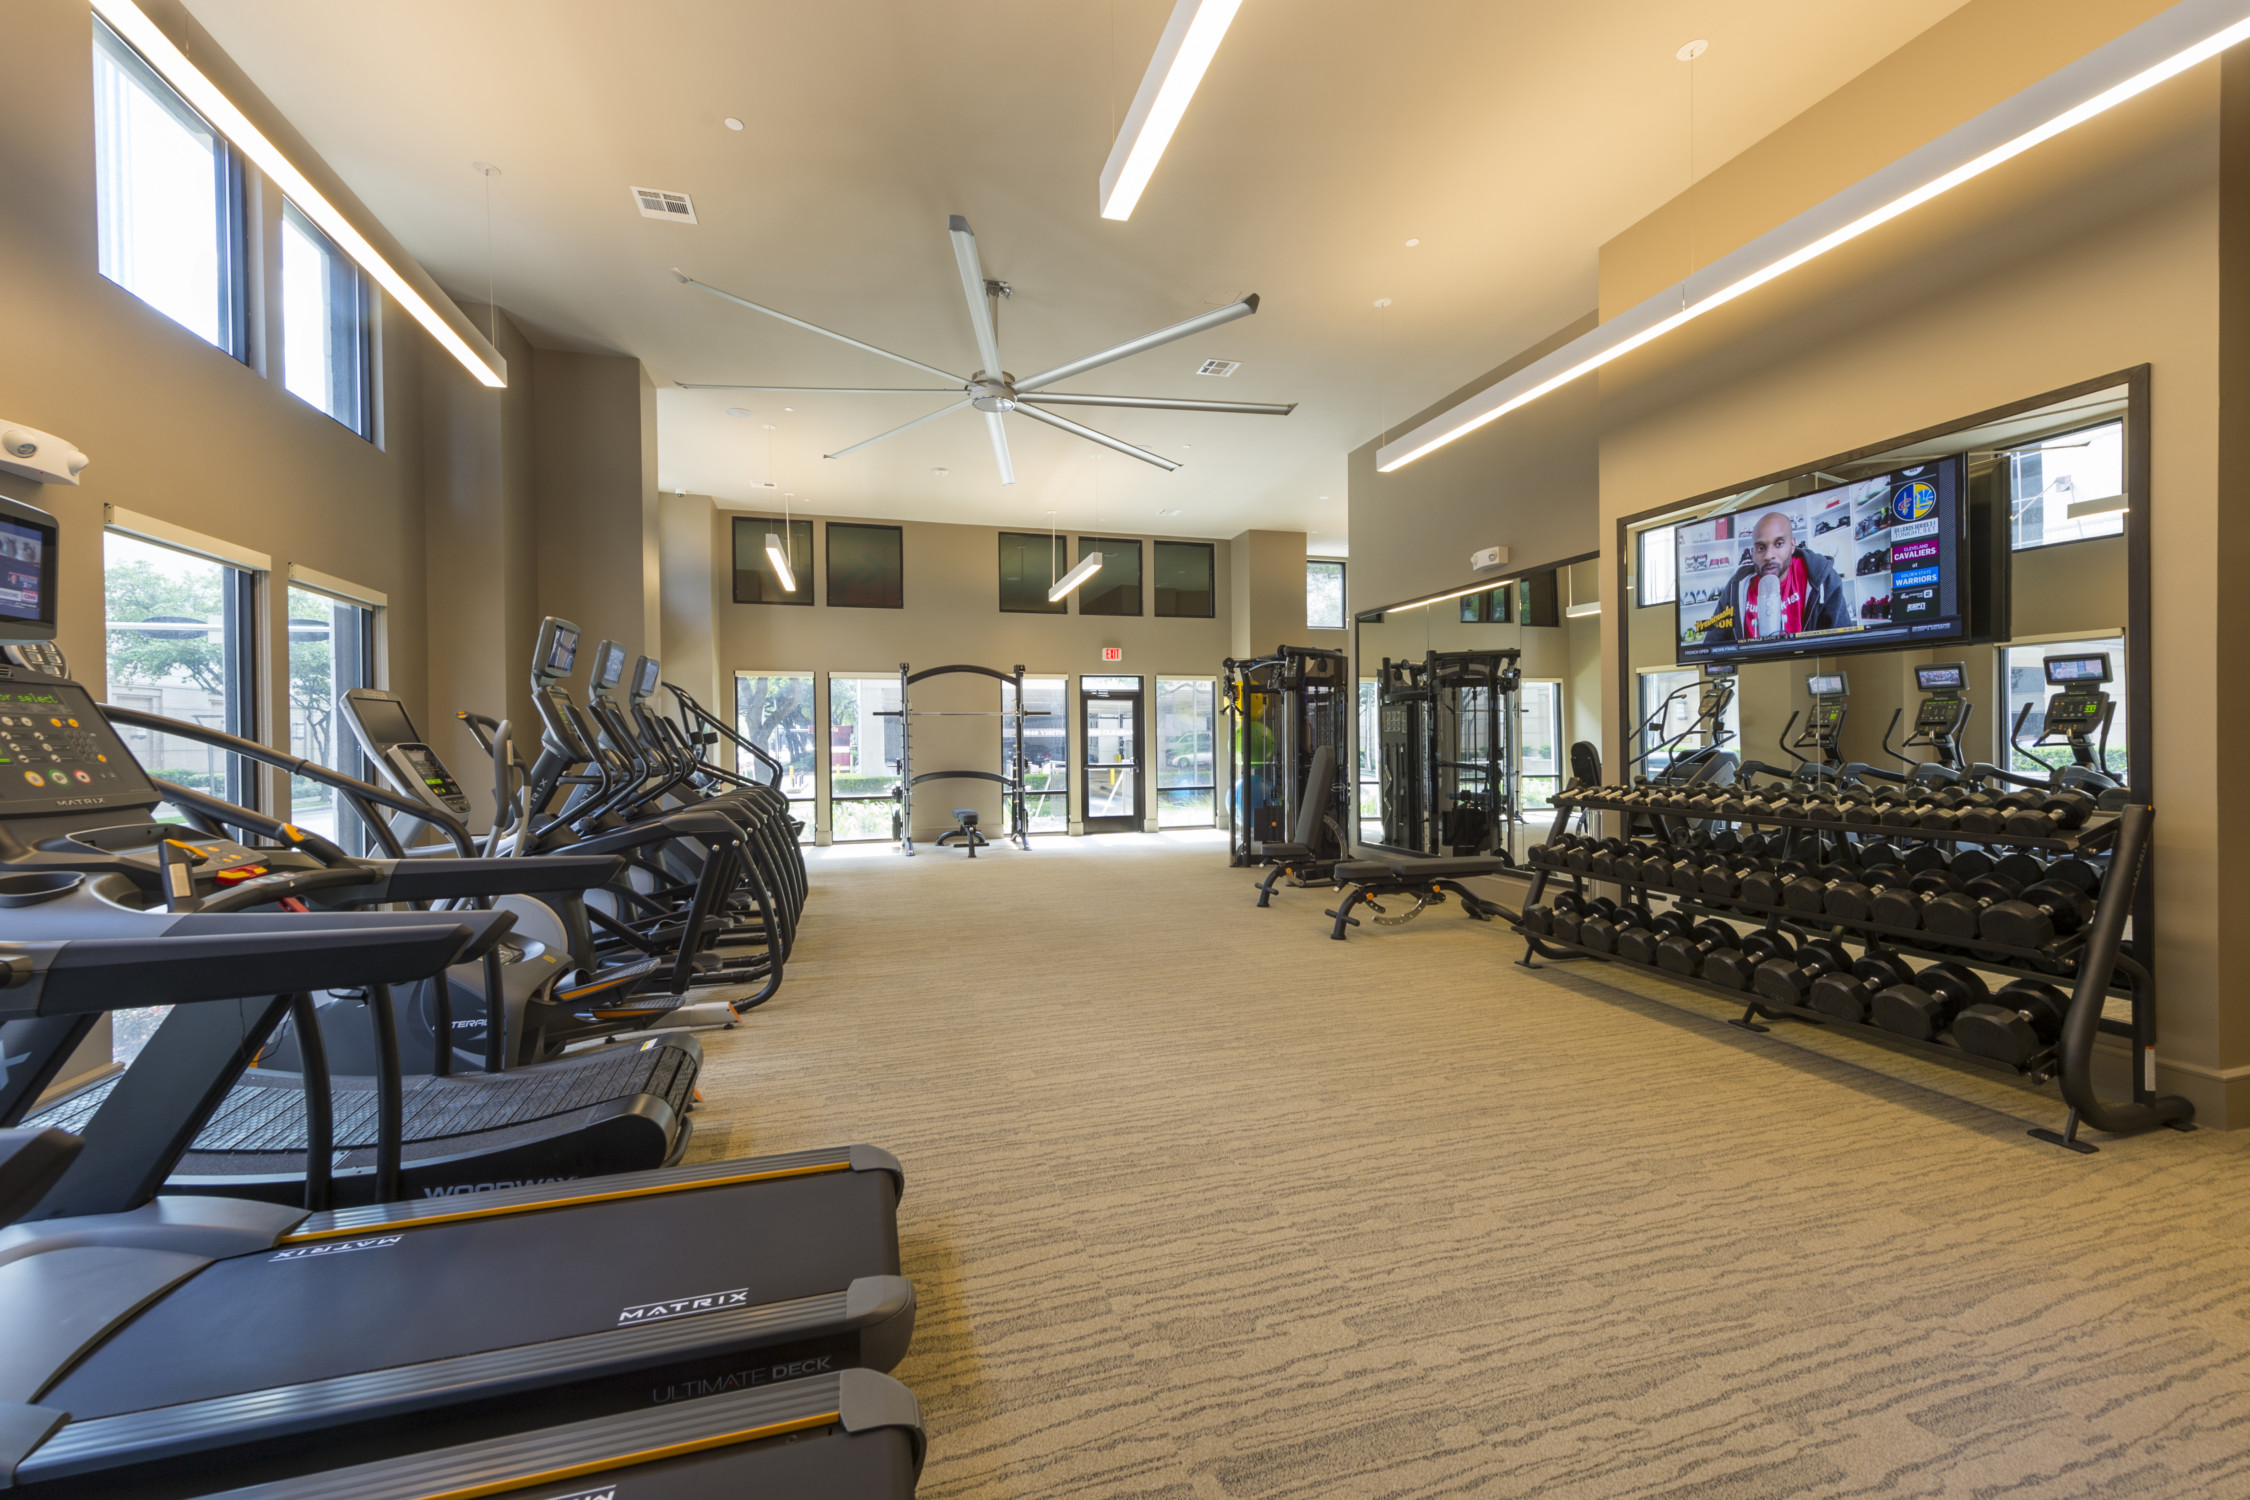 Fitness Center - Alexan 5151 Apartments